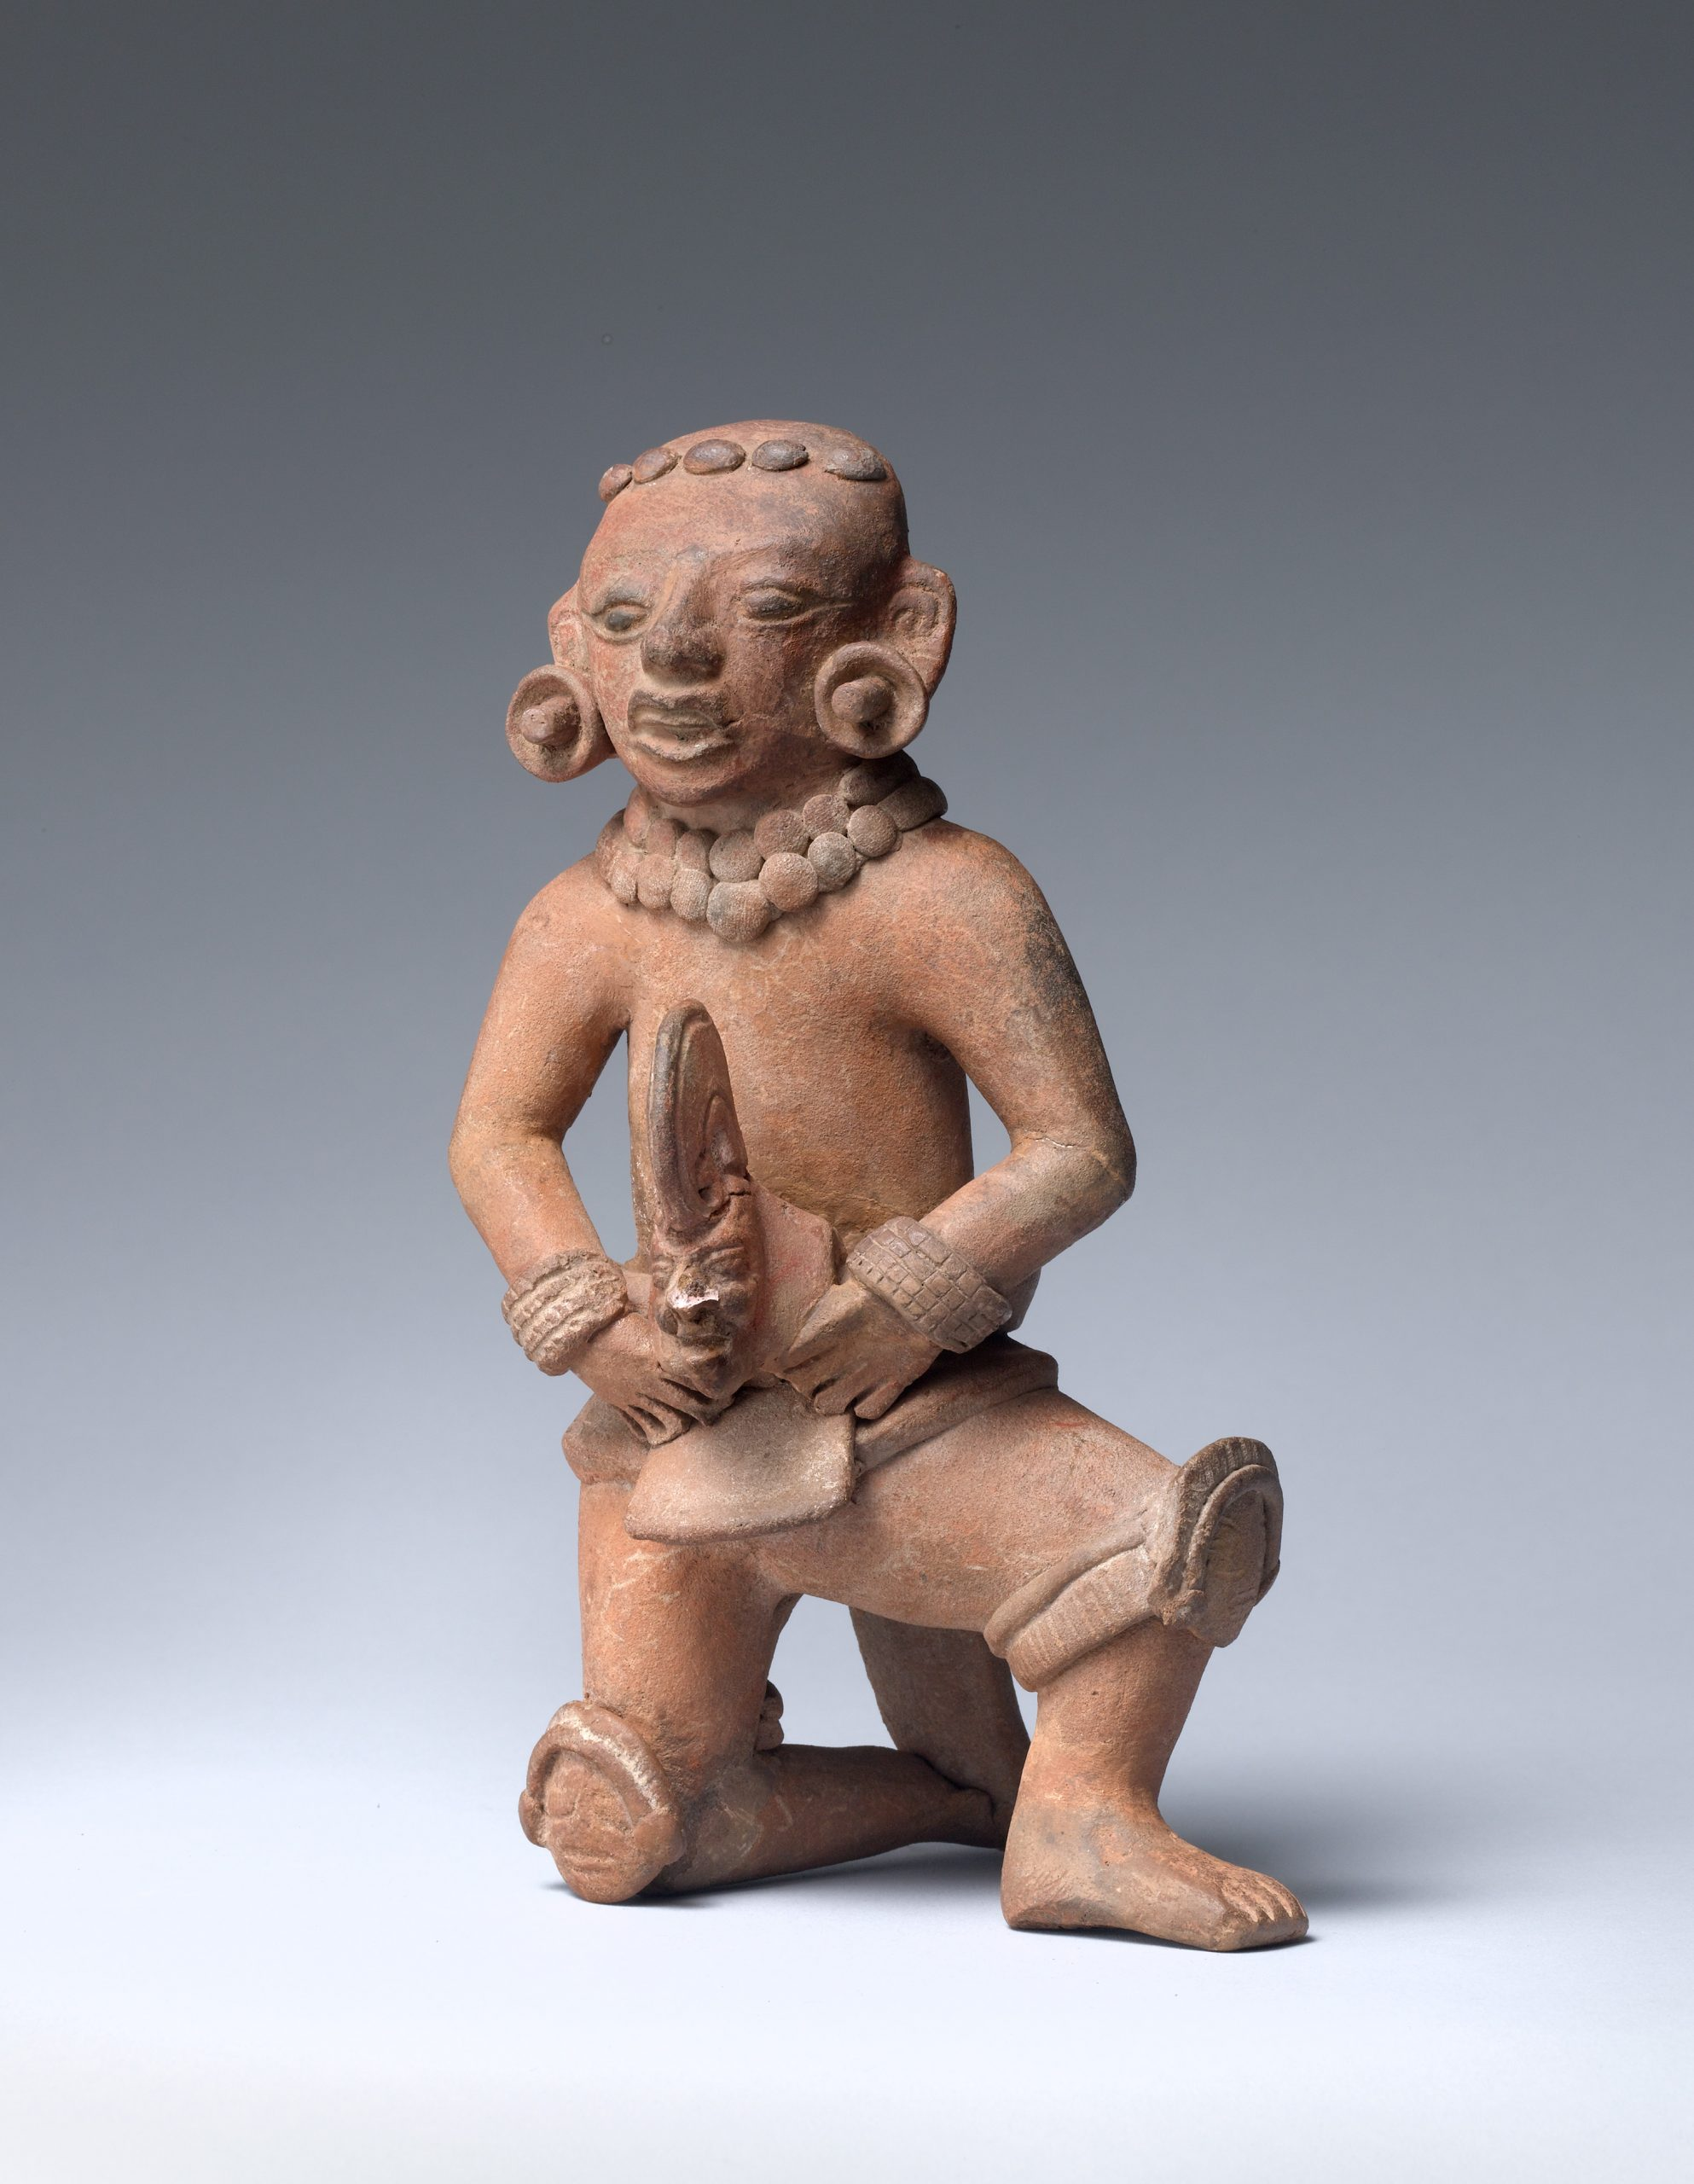 Ceramic sculpture of a ballplayer kneeling on one knee wearing knee pads, hand mitts, and waist pads, and earrings while holding a head.